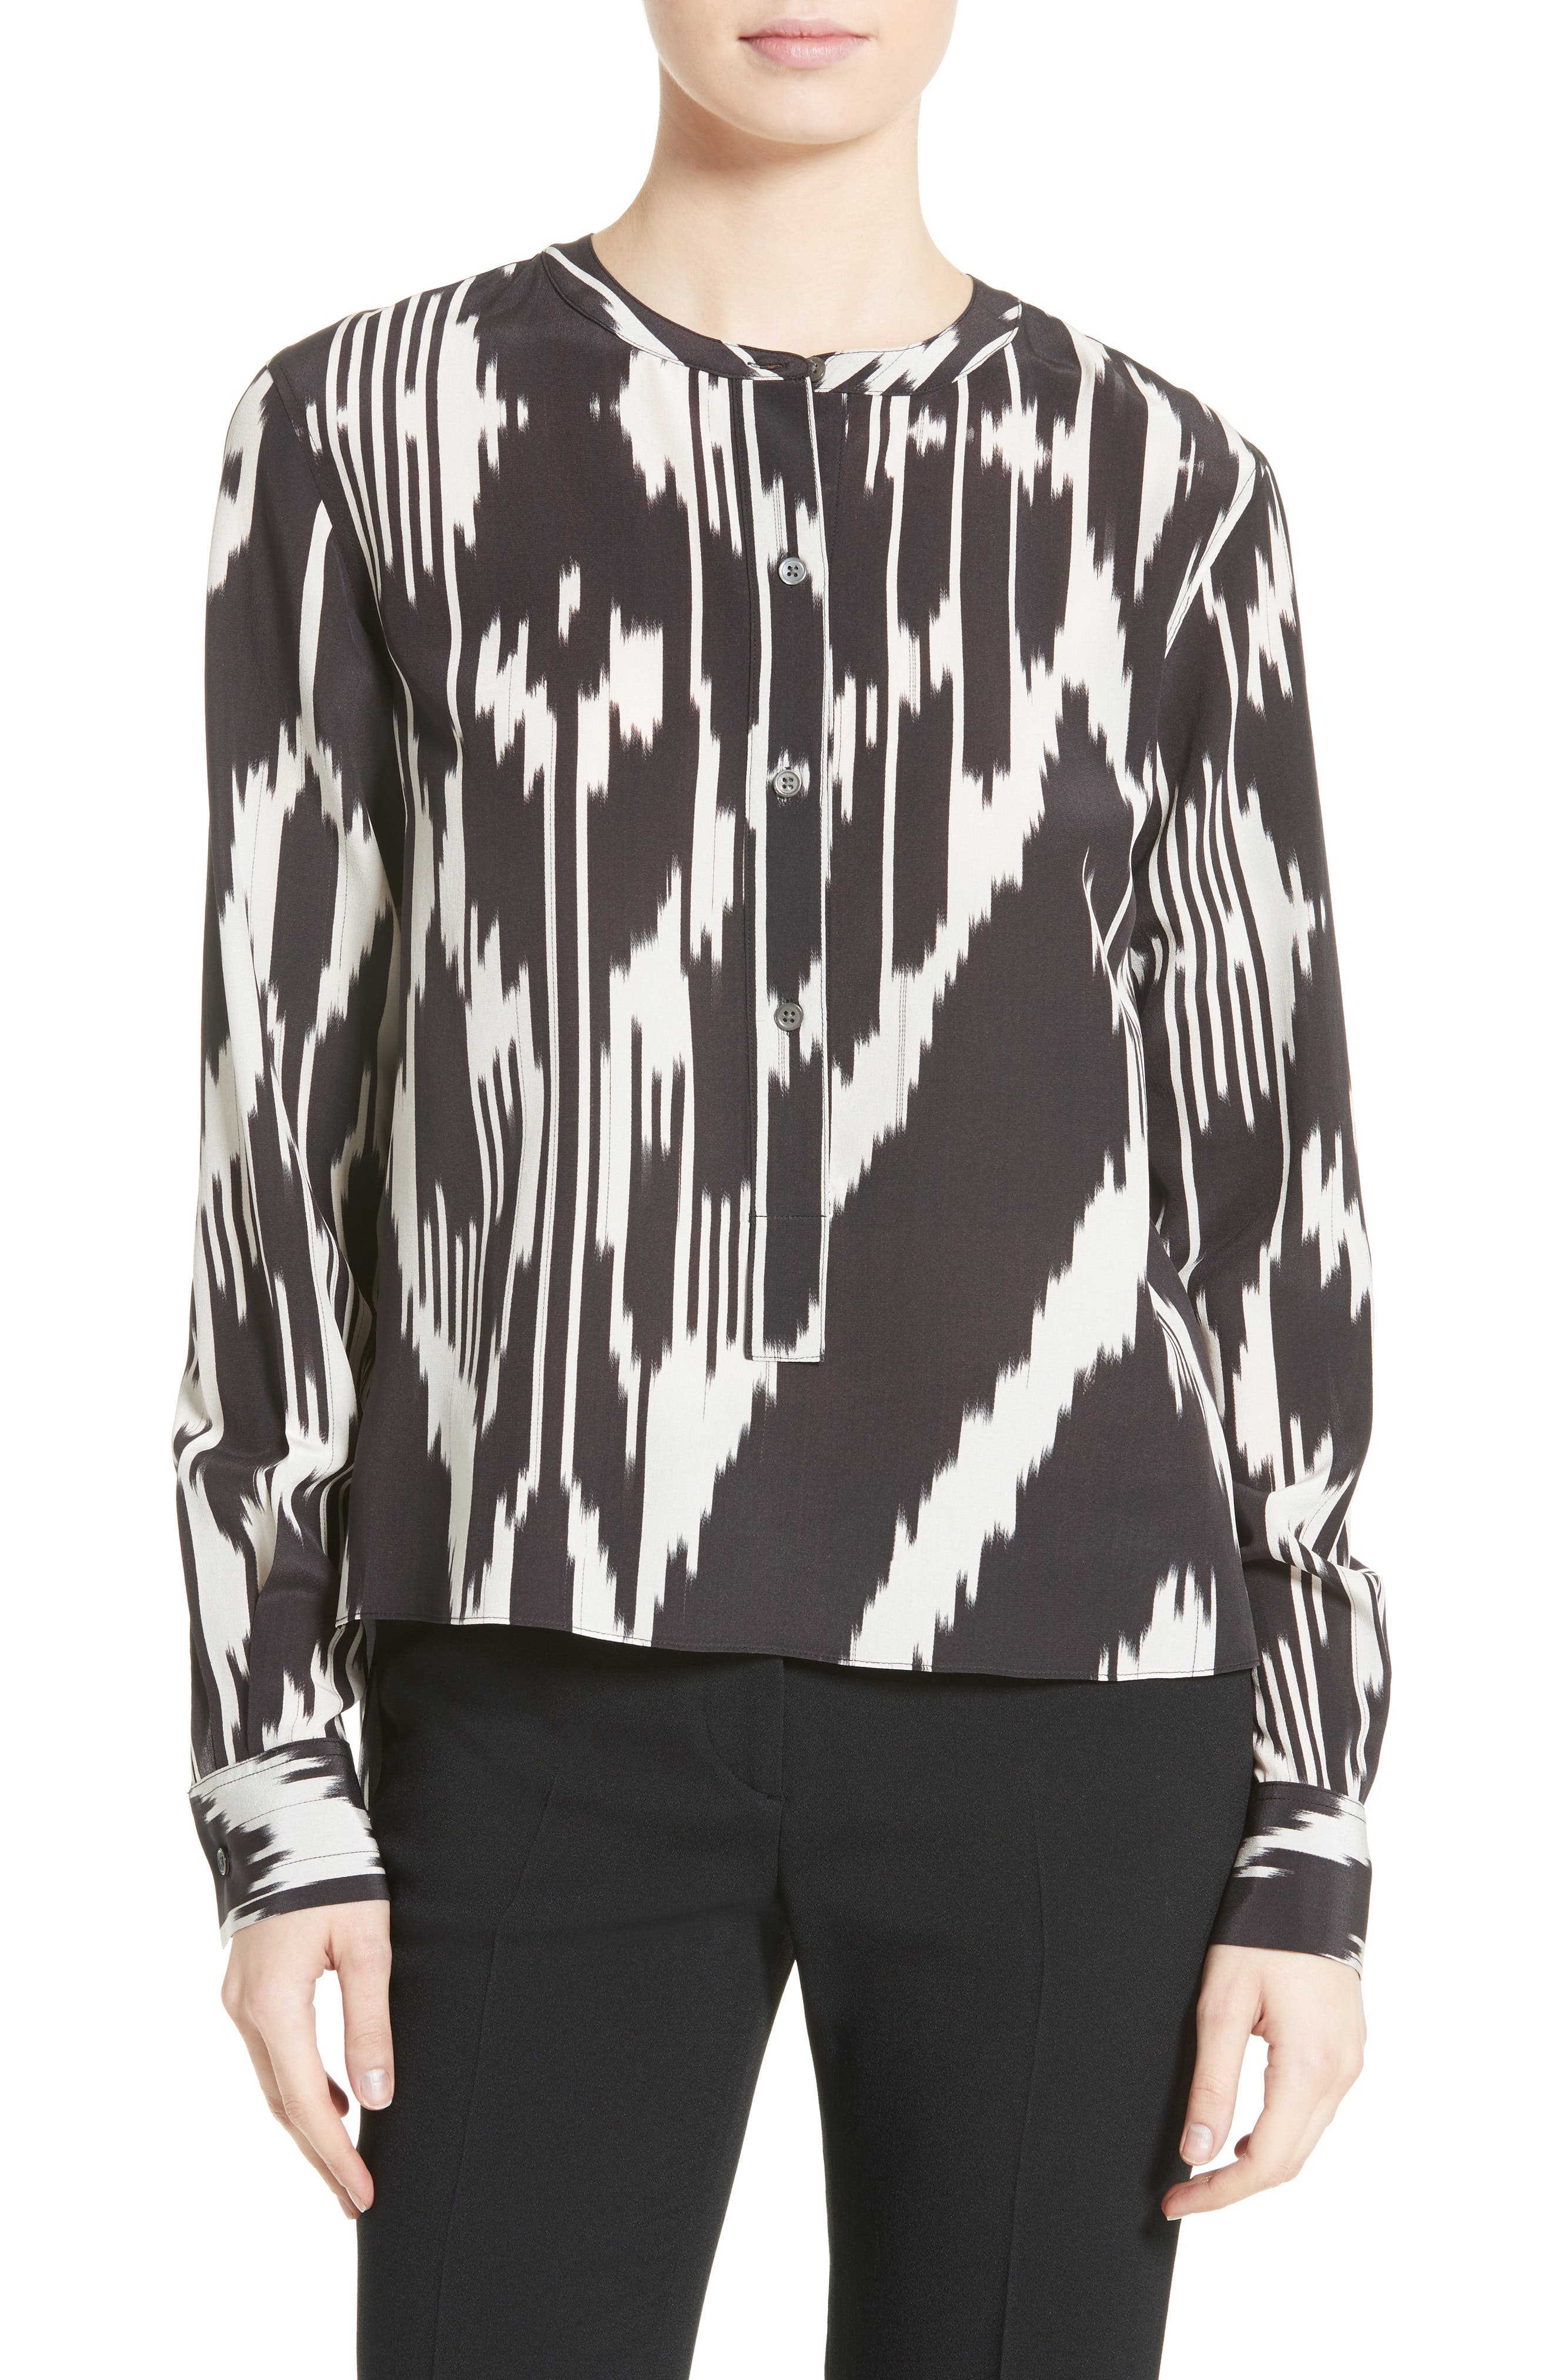 Isalva Interlace Ikat Silk Top,                             Main thumbnail 1, color,                             015